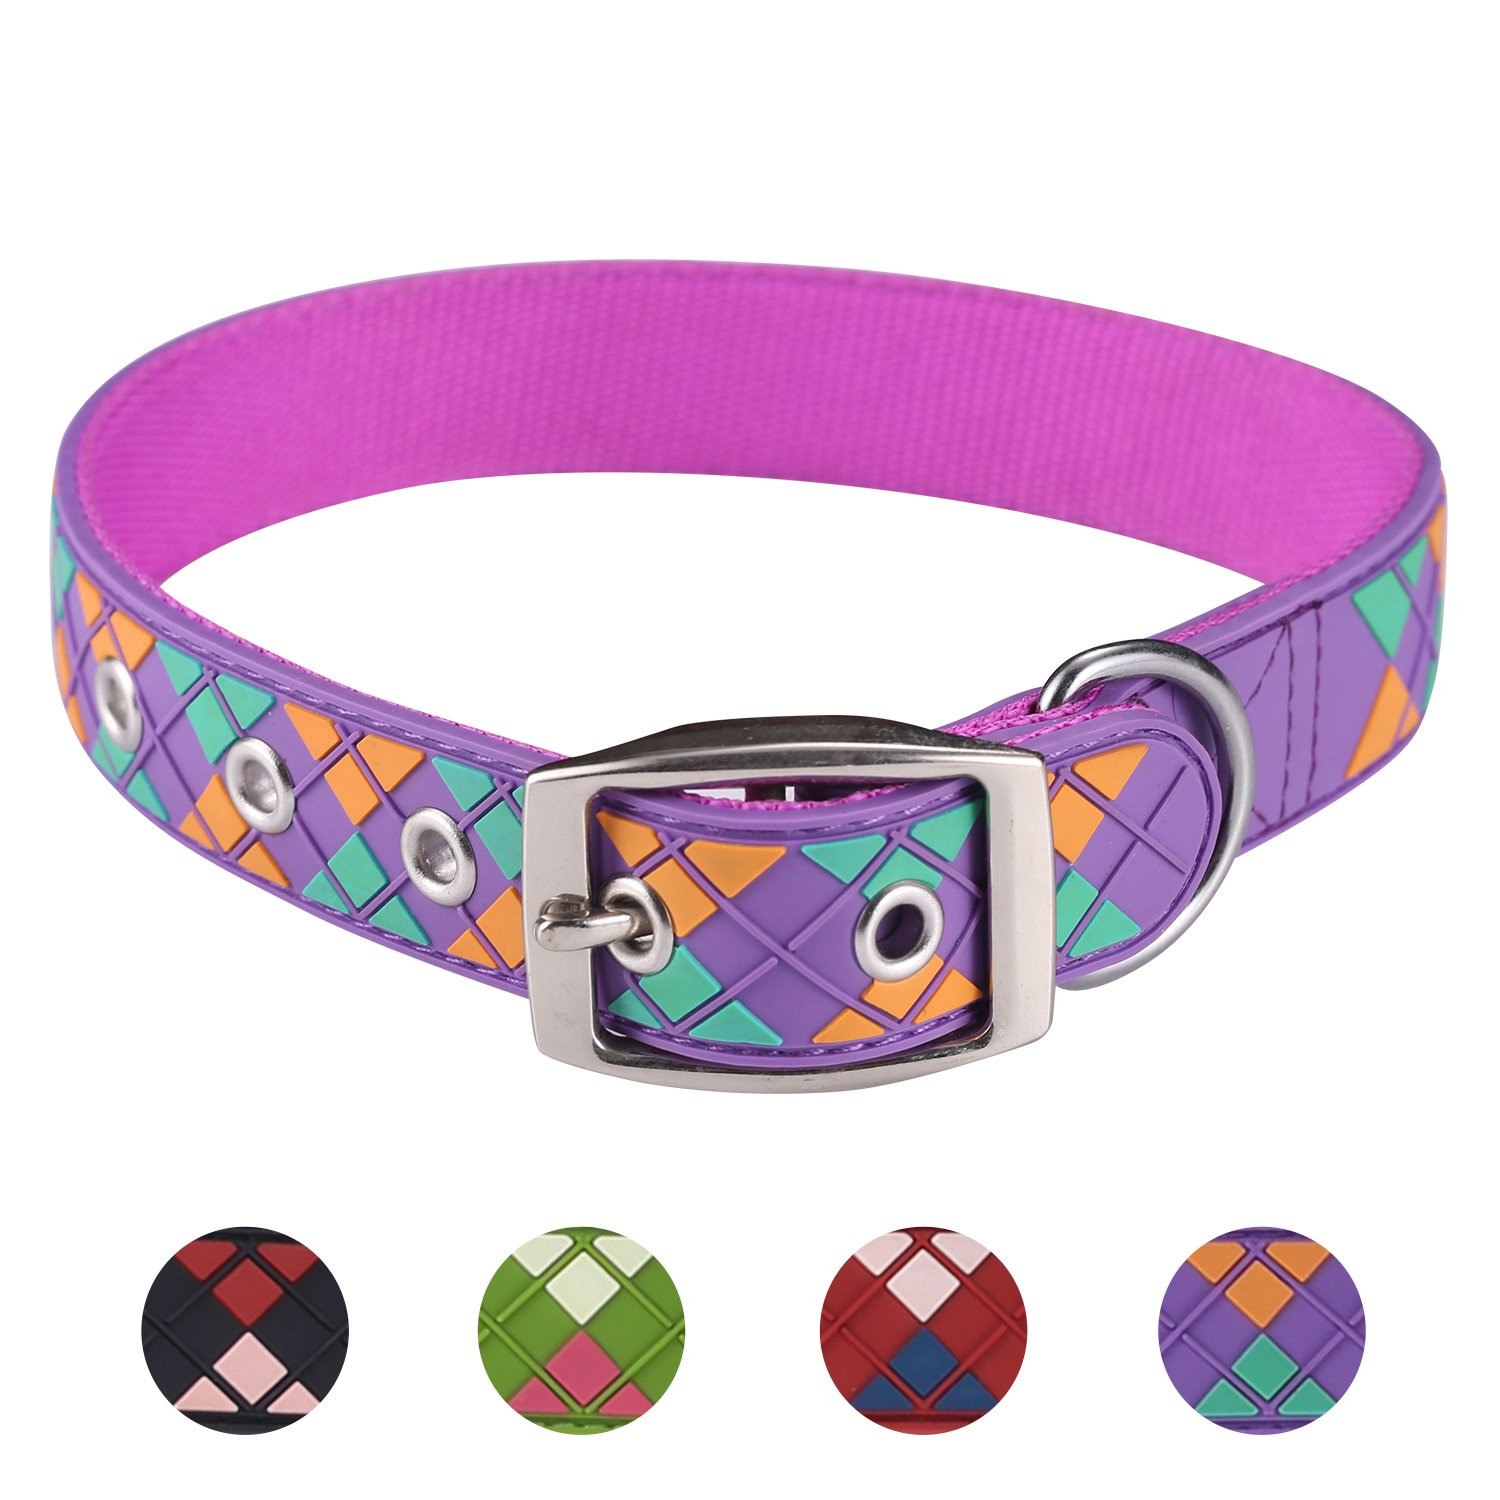 Purple X-small Neck 10\ Purple X-small Neck 10\ Paw Sport Argyle Dog Collars, Water Proof, Adjustable Collars for Dogs (X-Small Neck 10 -12 , Purple)